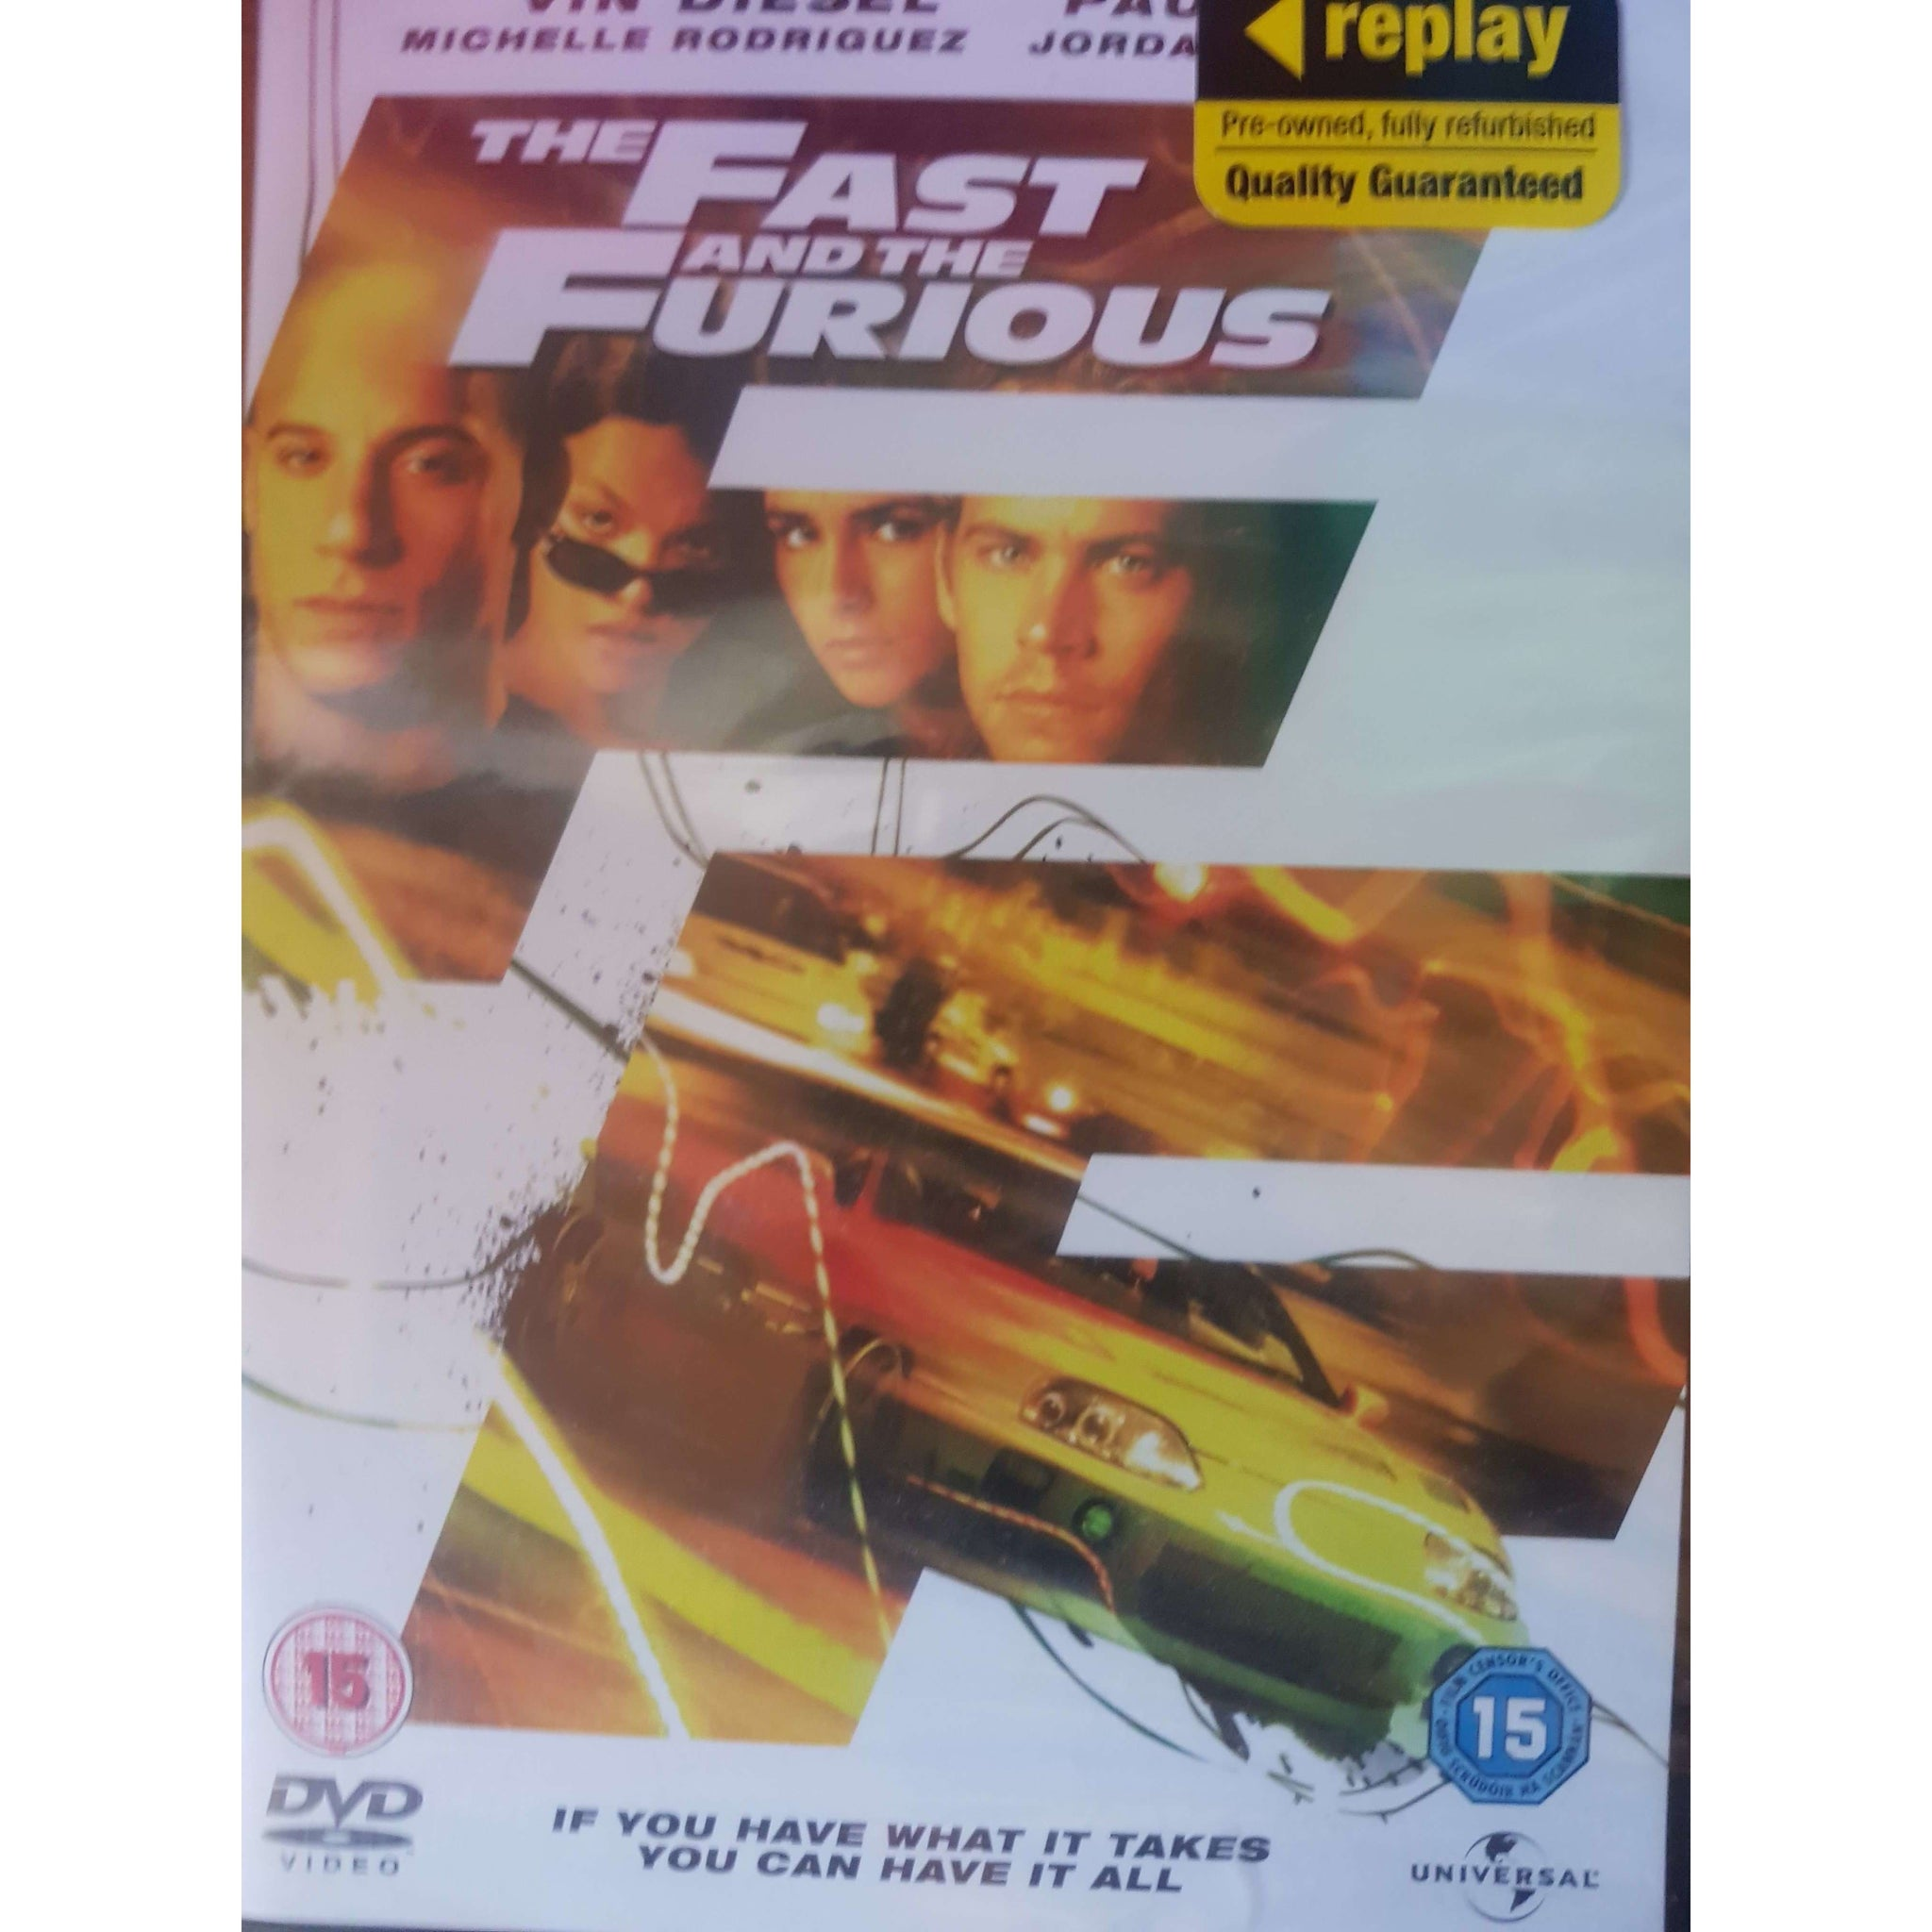 The Fast And The Furious DVD (PREOWNED) (15)